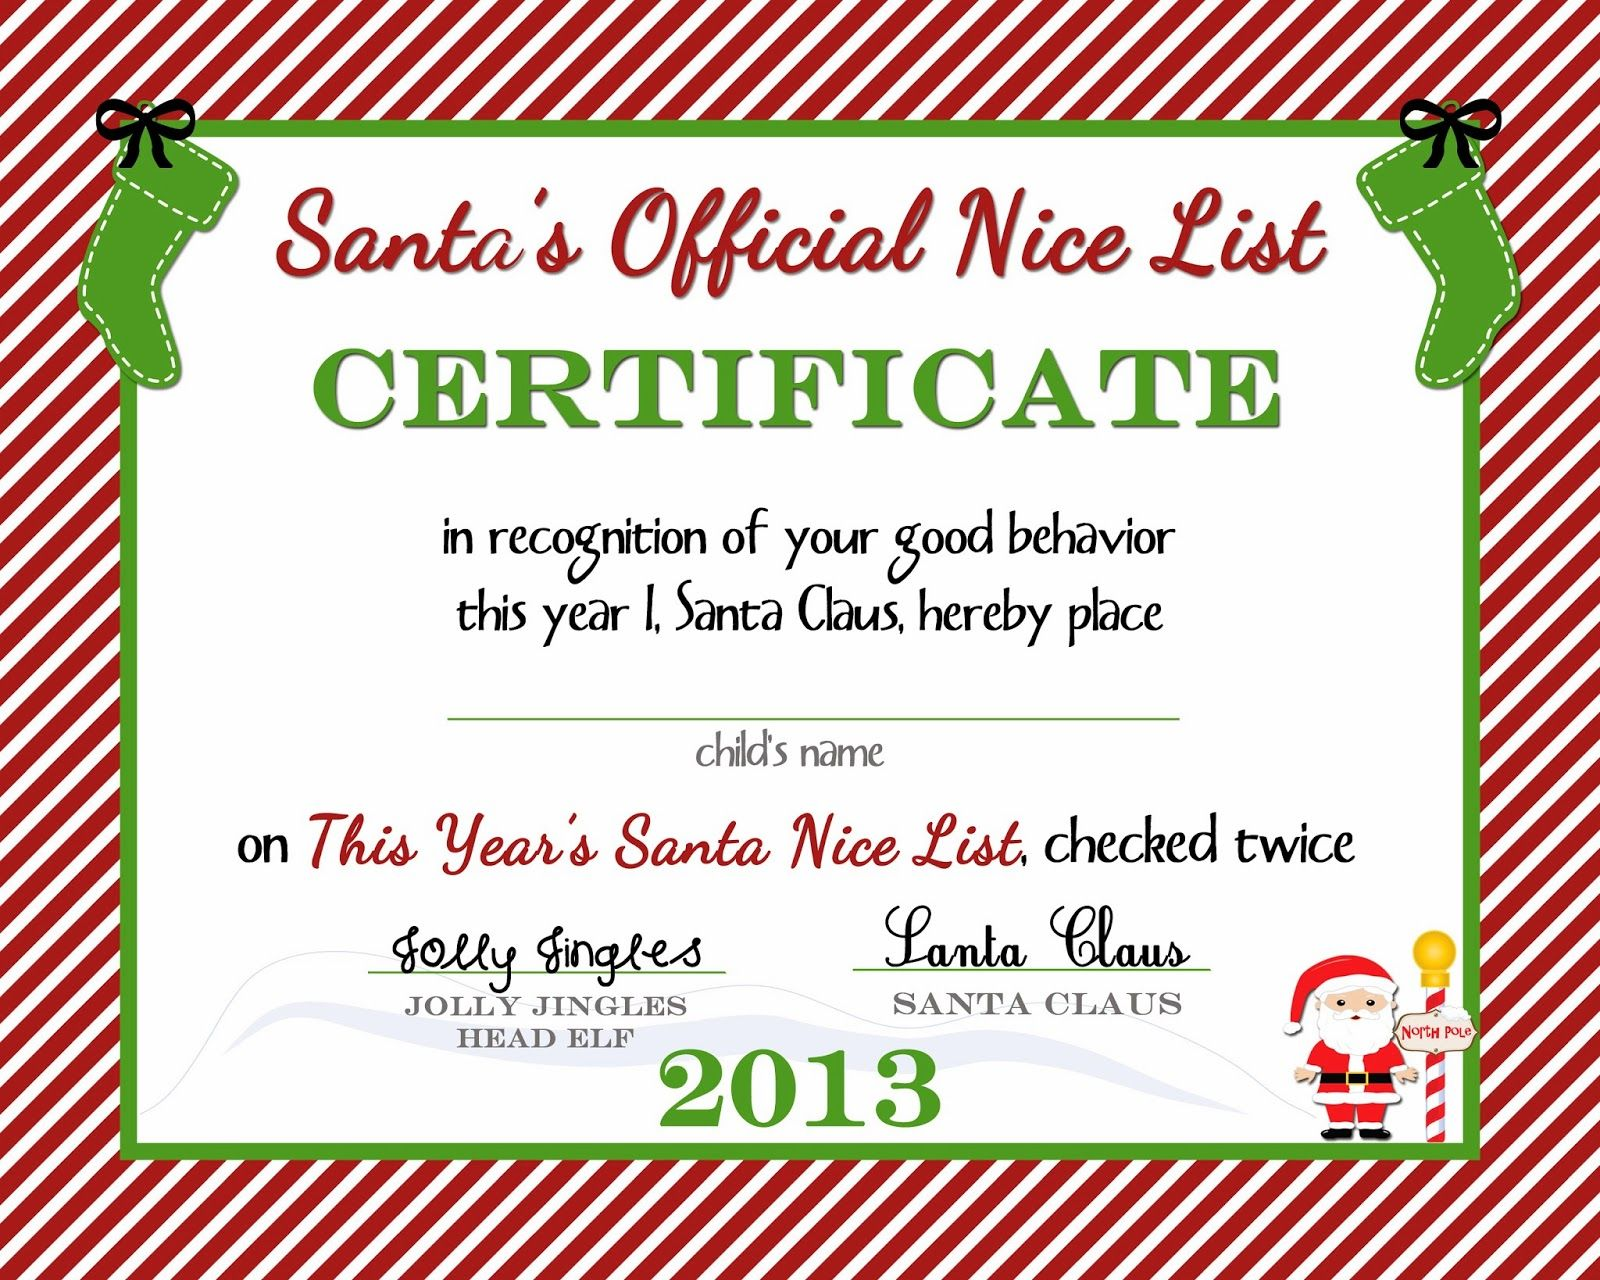 Free printable nice list certificate from the north pole free printable nice list certificate from the north pole alramifo Choice Image